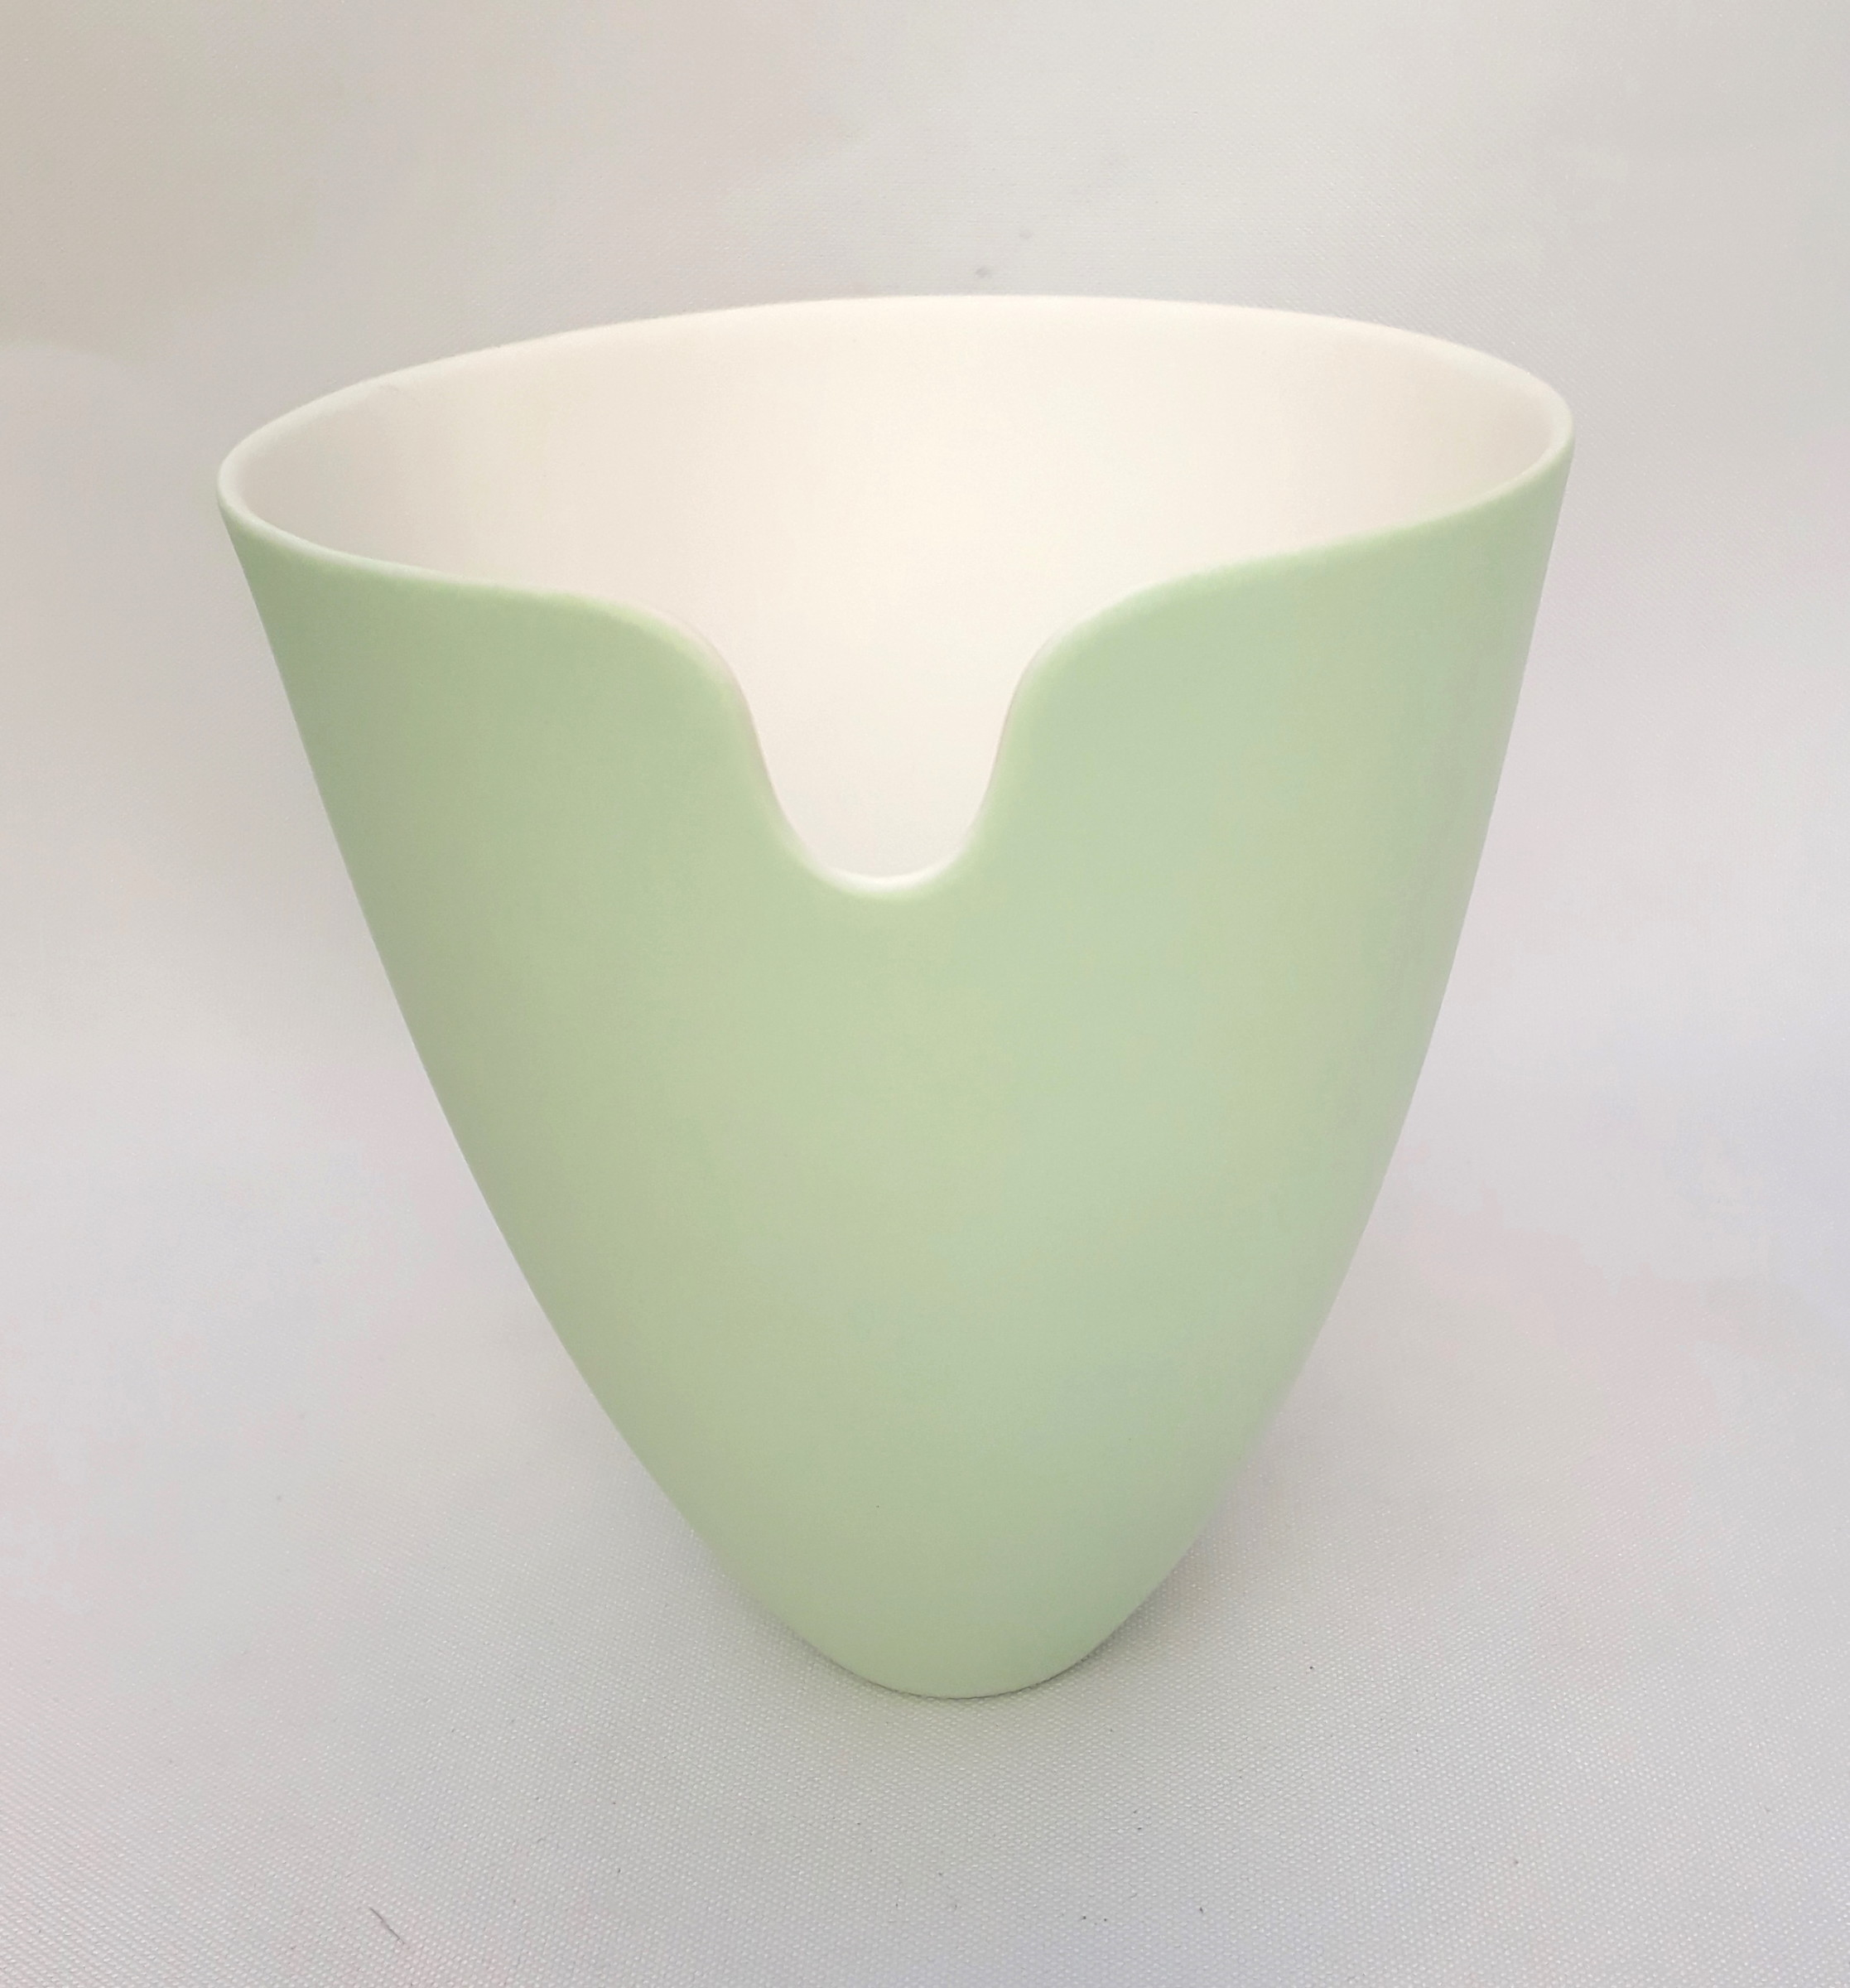 "<span class=""link fancybox-details-link""><a href=""/artists/60-sasha-wardell/works/4135-sasha-wardell-small-edge-vase-green-2017/"">View Detail Page</a></span><div class=""artist""><strong>Sasha Wardell</strong></div> <div class=""title""><em>Small Edge Vase Green</em>, 2017</div> <div class=""signed_and_dated"">inscribed with artist initials on base</div> <div class=""medium"">layered and sliced bone china</div> <div class=""dimensions"">h. 14 x w. 12 cm</div><div class=""copyright_line"">OwnArt: £ 10 x 10 Months, 0% APR</div>"